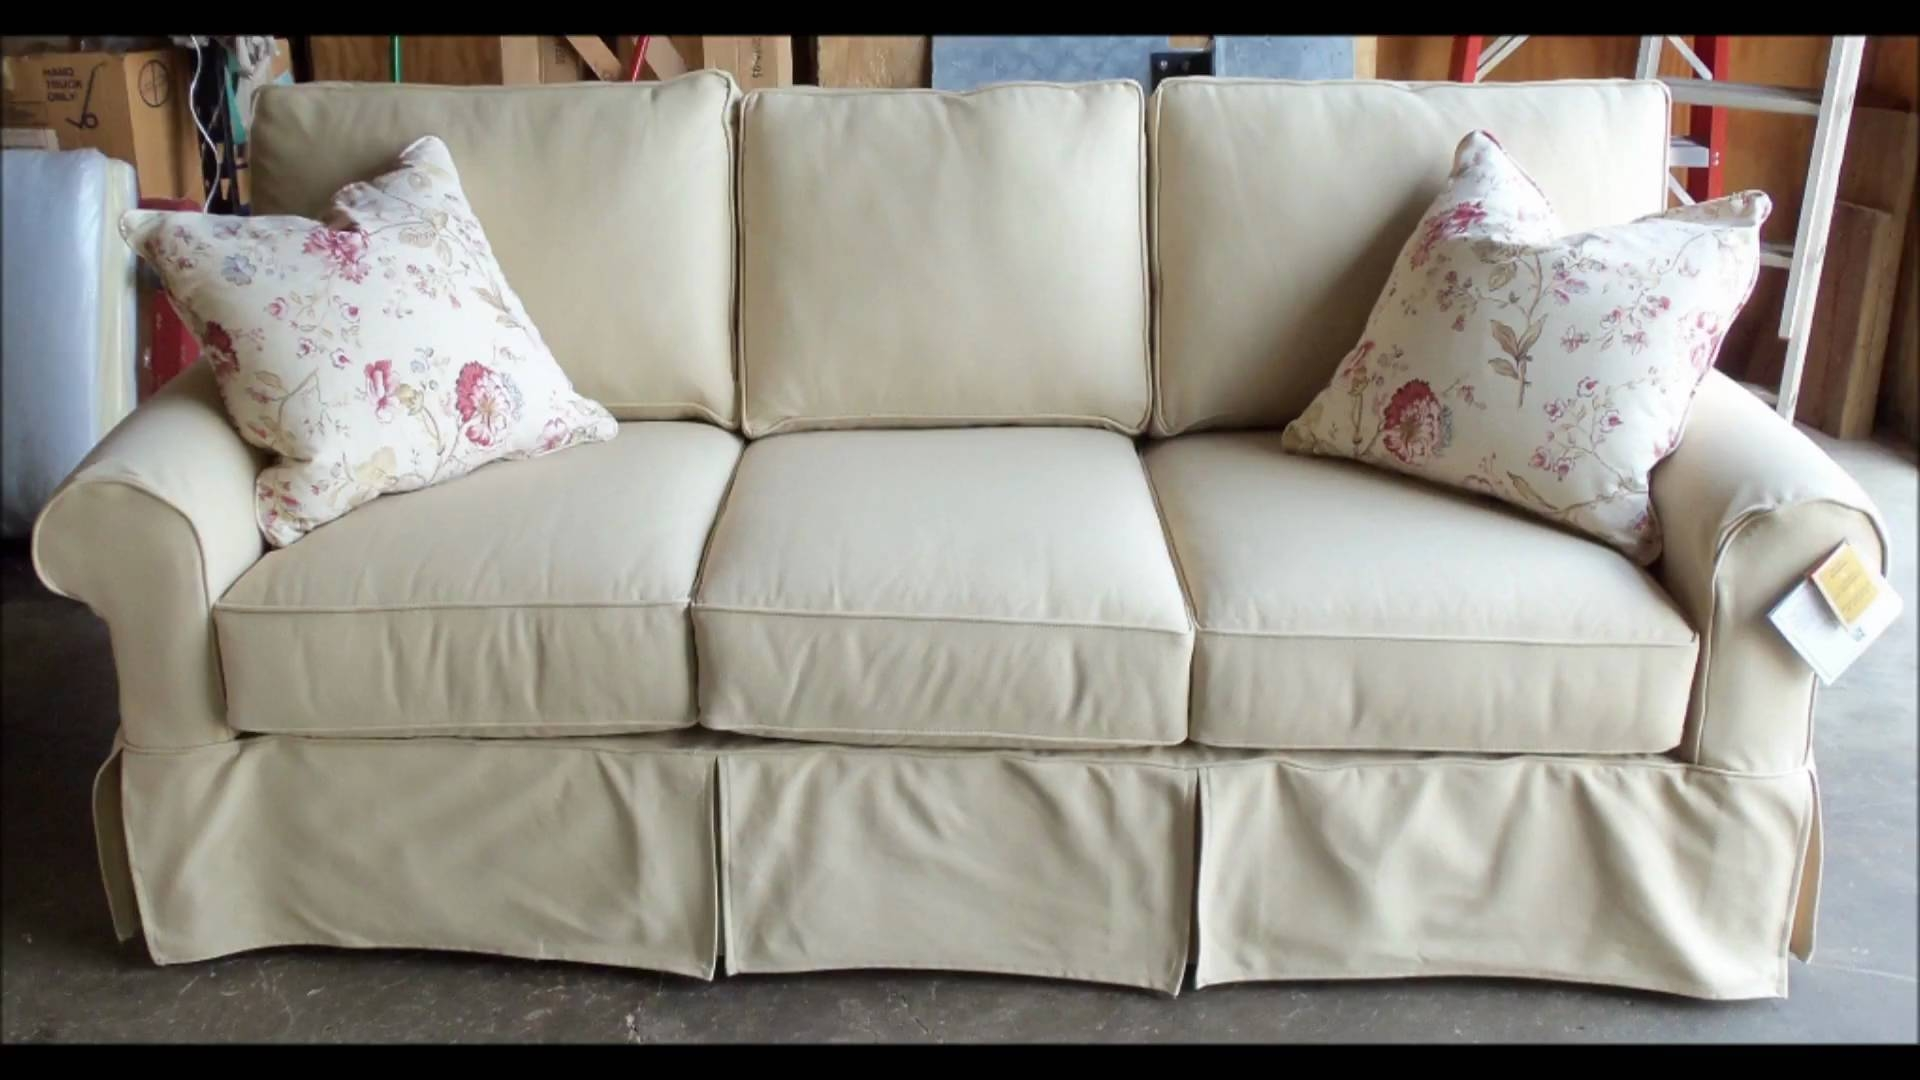 Sofa Slip Covers. Chic Home Melinda Box Quilted Quick Drape Chair pertaining to Slipcover Style Sofas (Image 14 of 15)